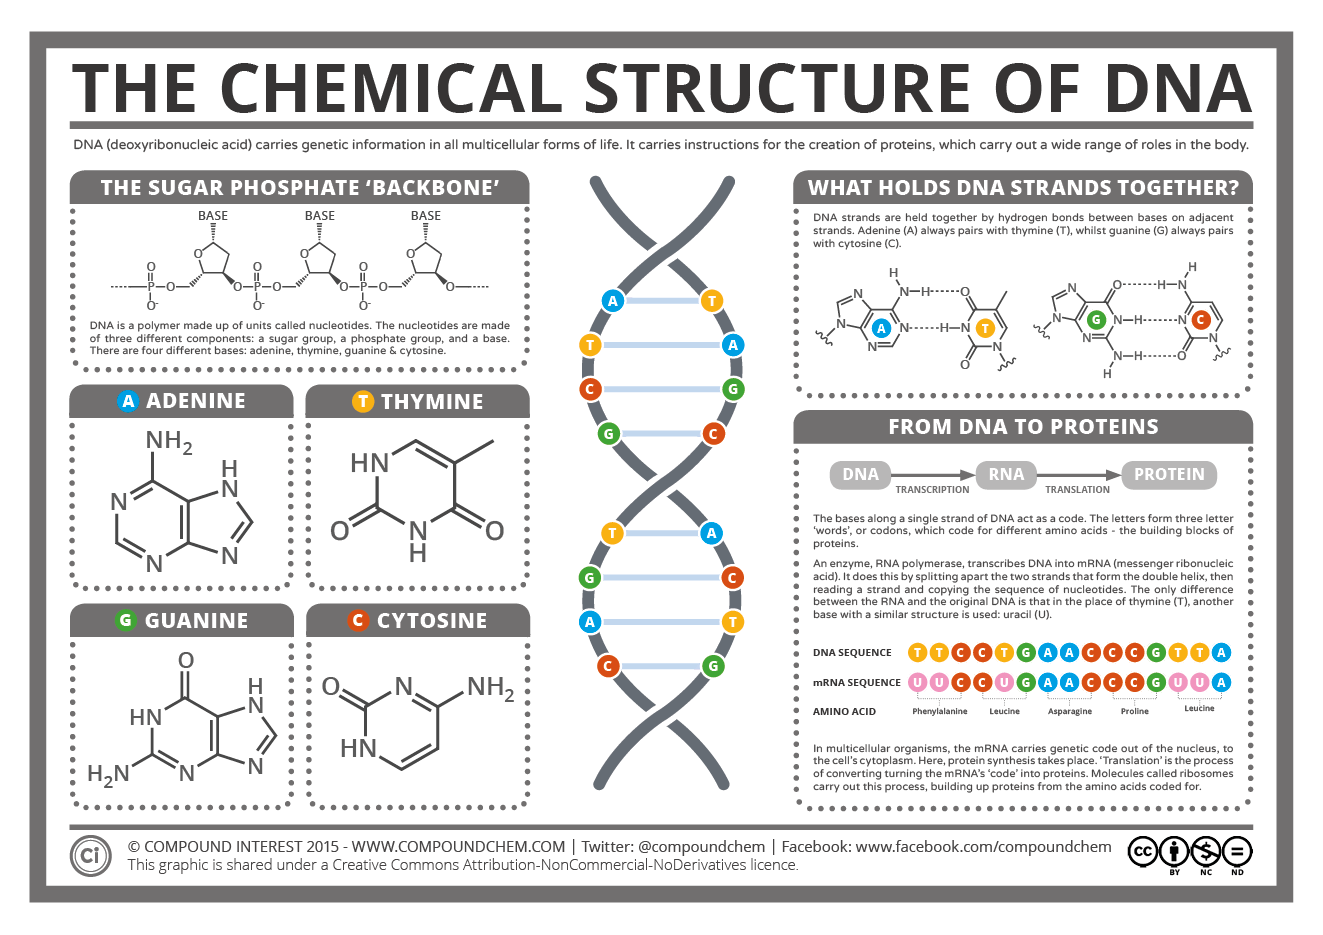 Compound Interest - The Chemical Structure of DNA